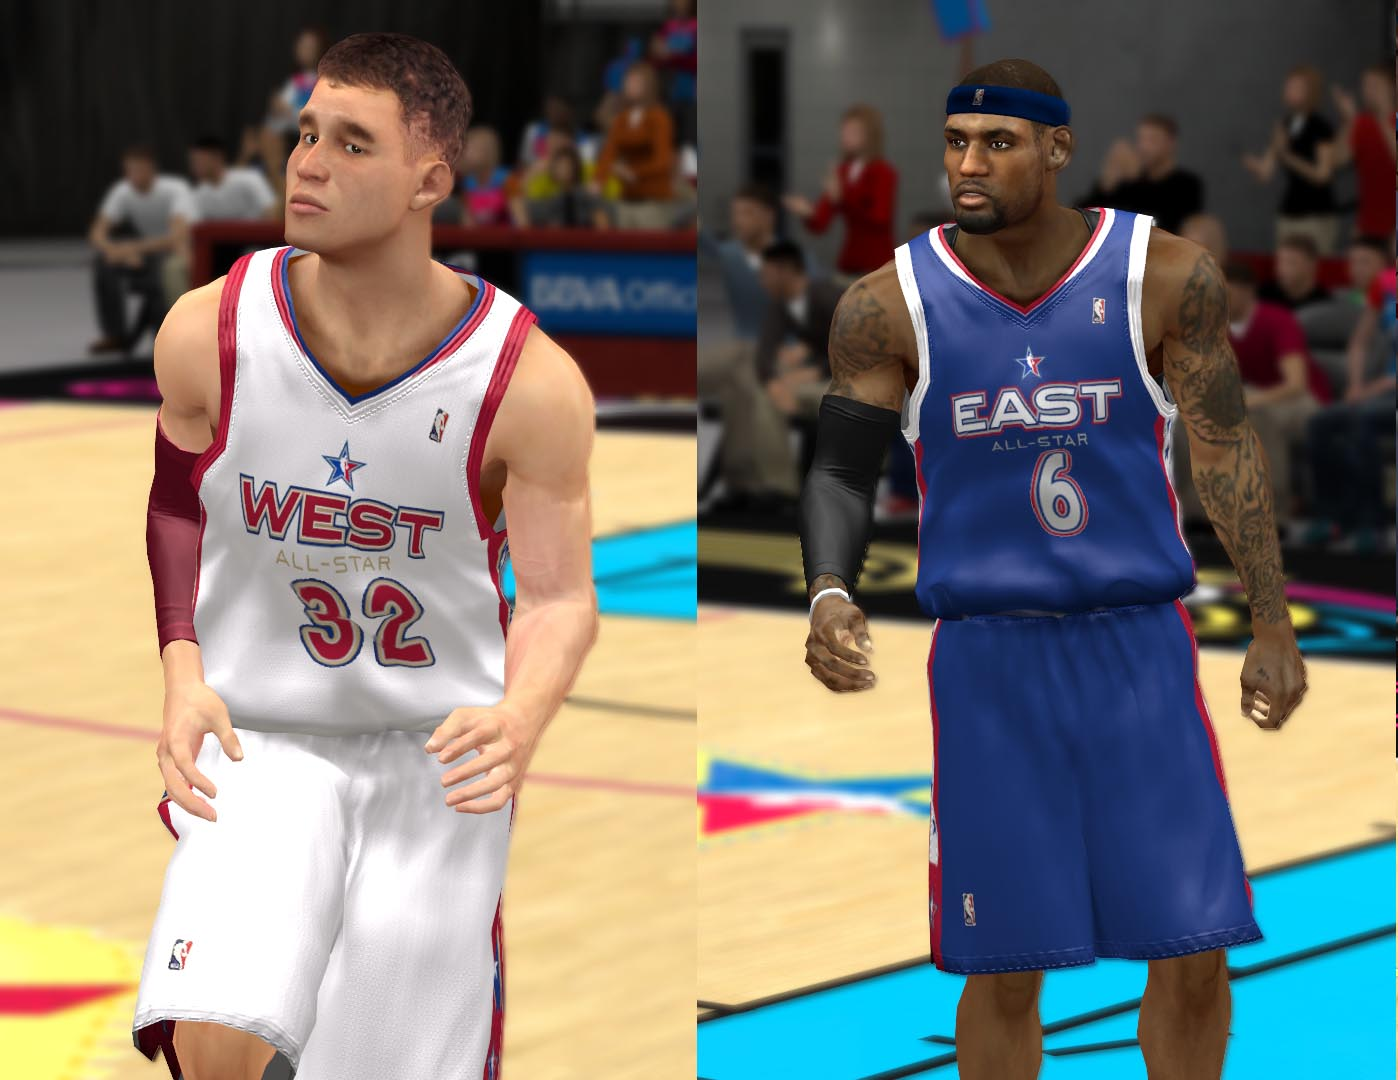 2005 All-Star Jerseys 2K13